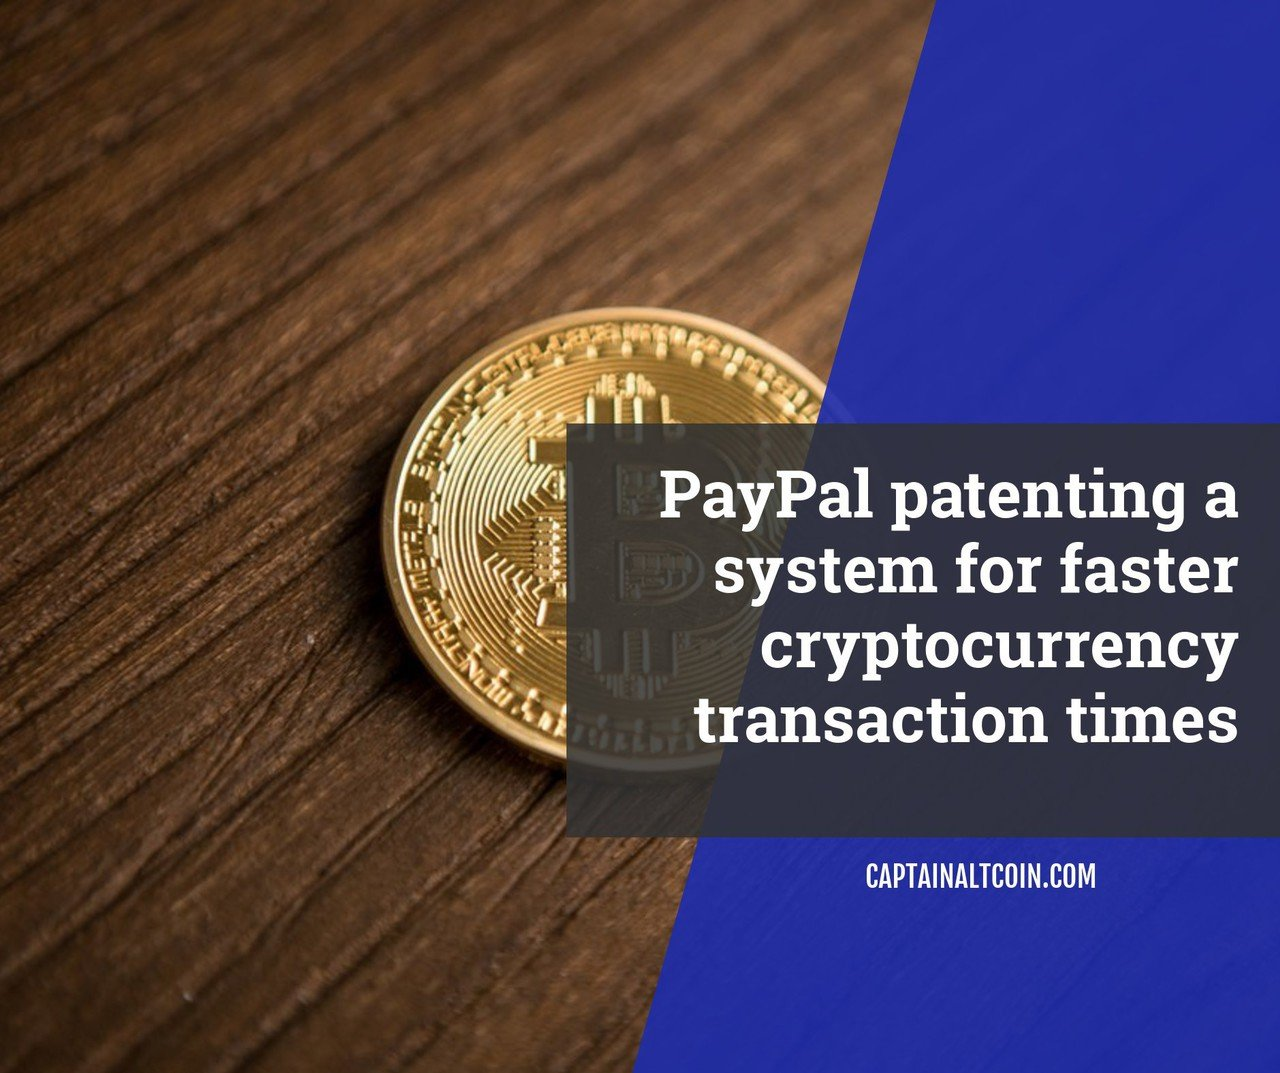 PayPal patenting a system for faster cryptocurrency transaction times